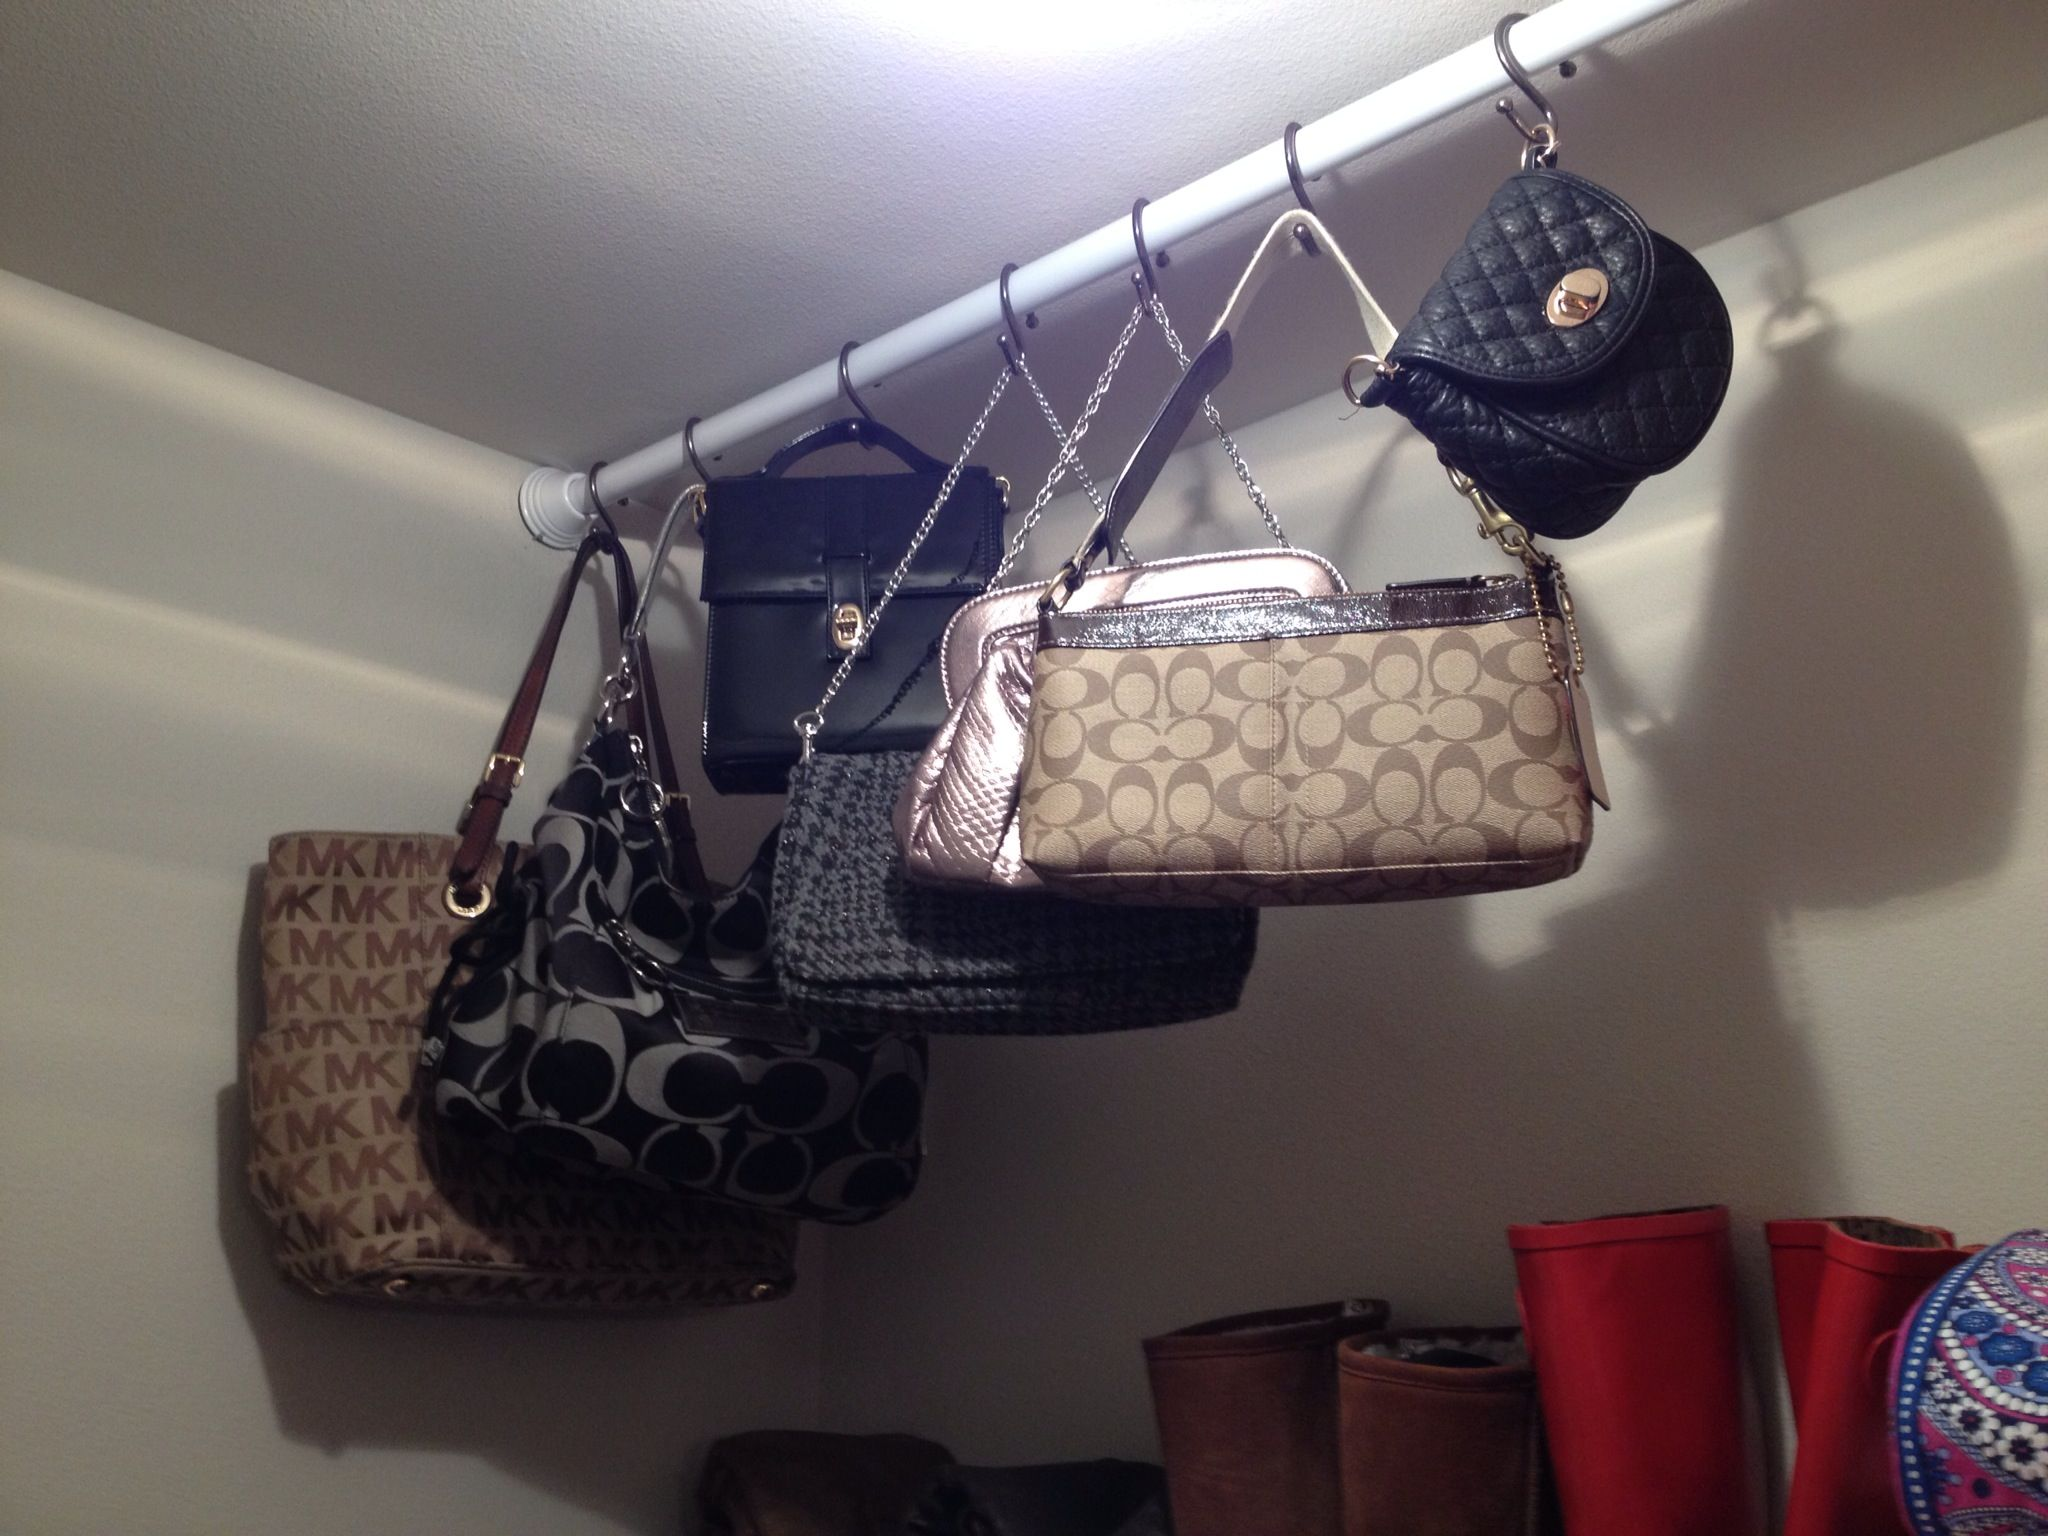 Purse Storage Using Shower Curtain Rod And S Hooks So Functional